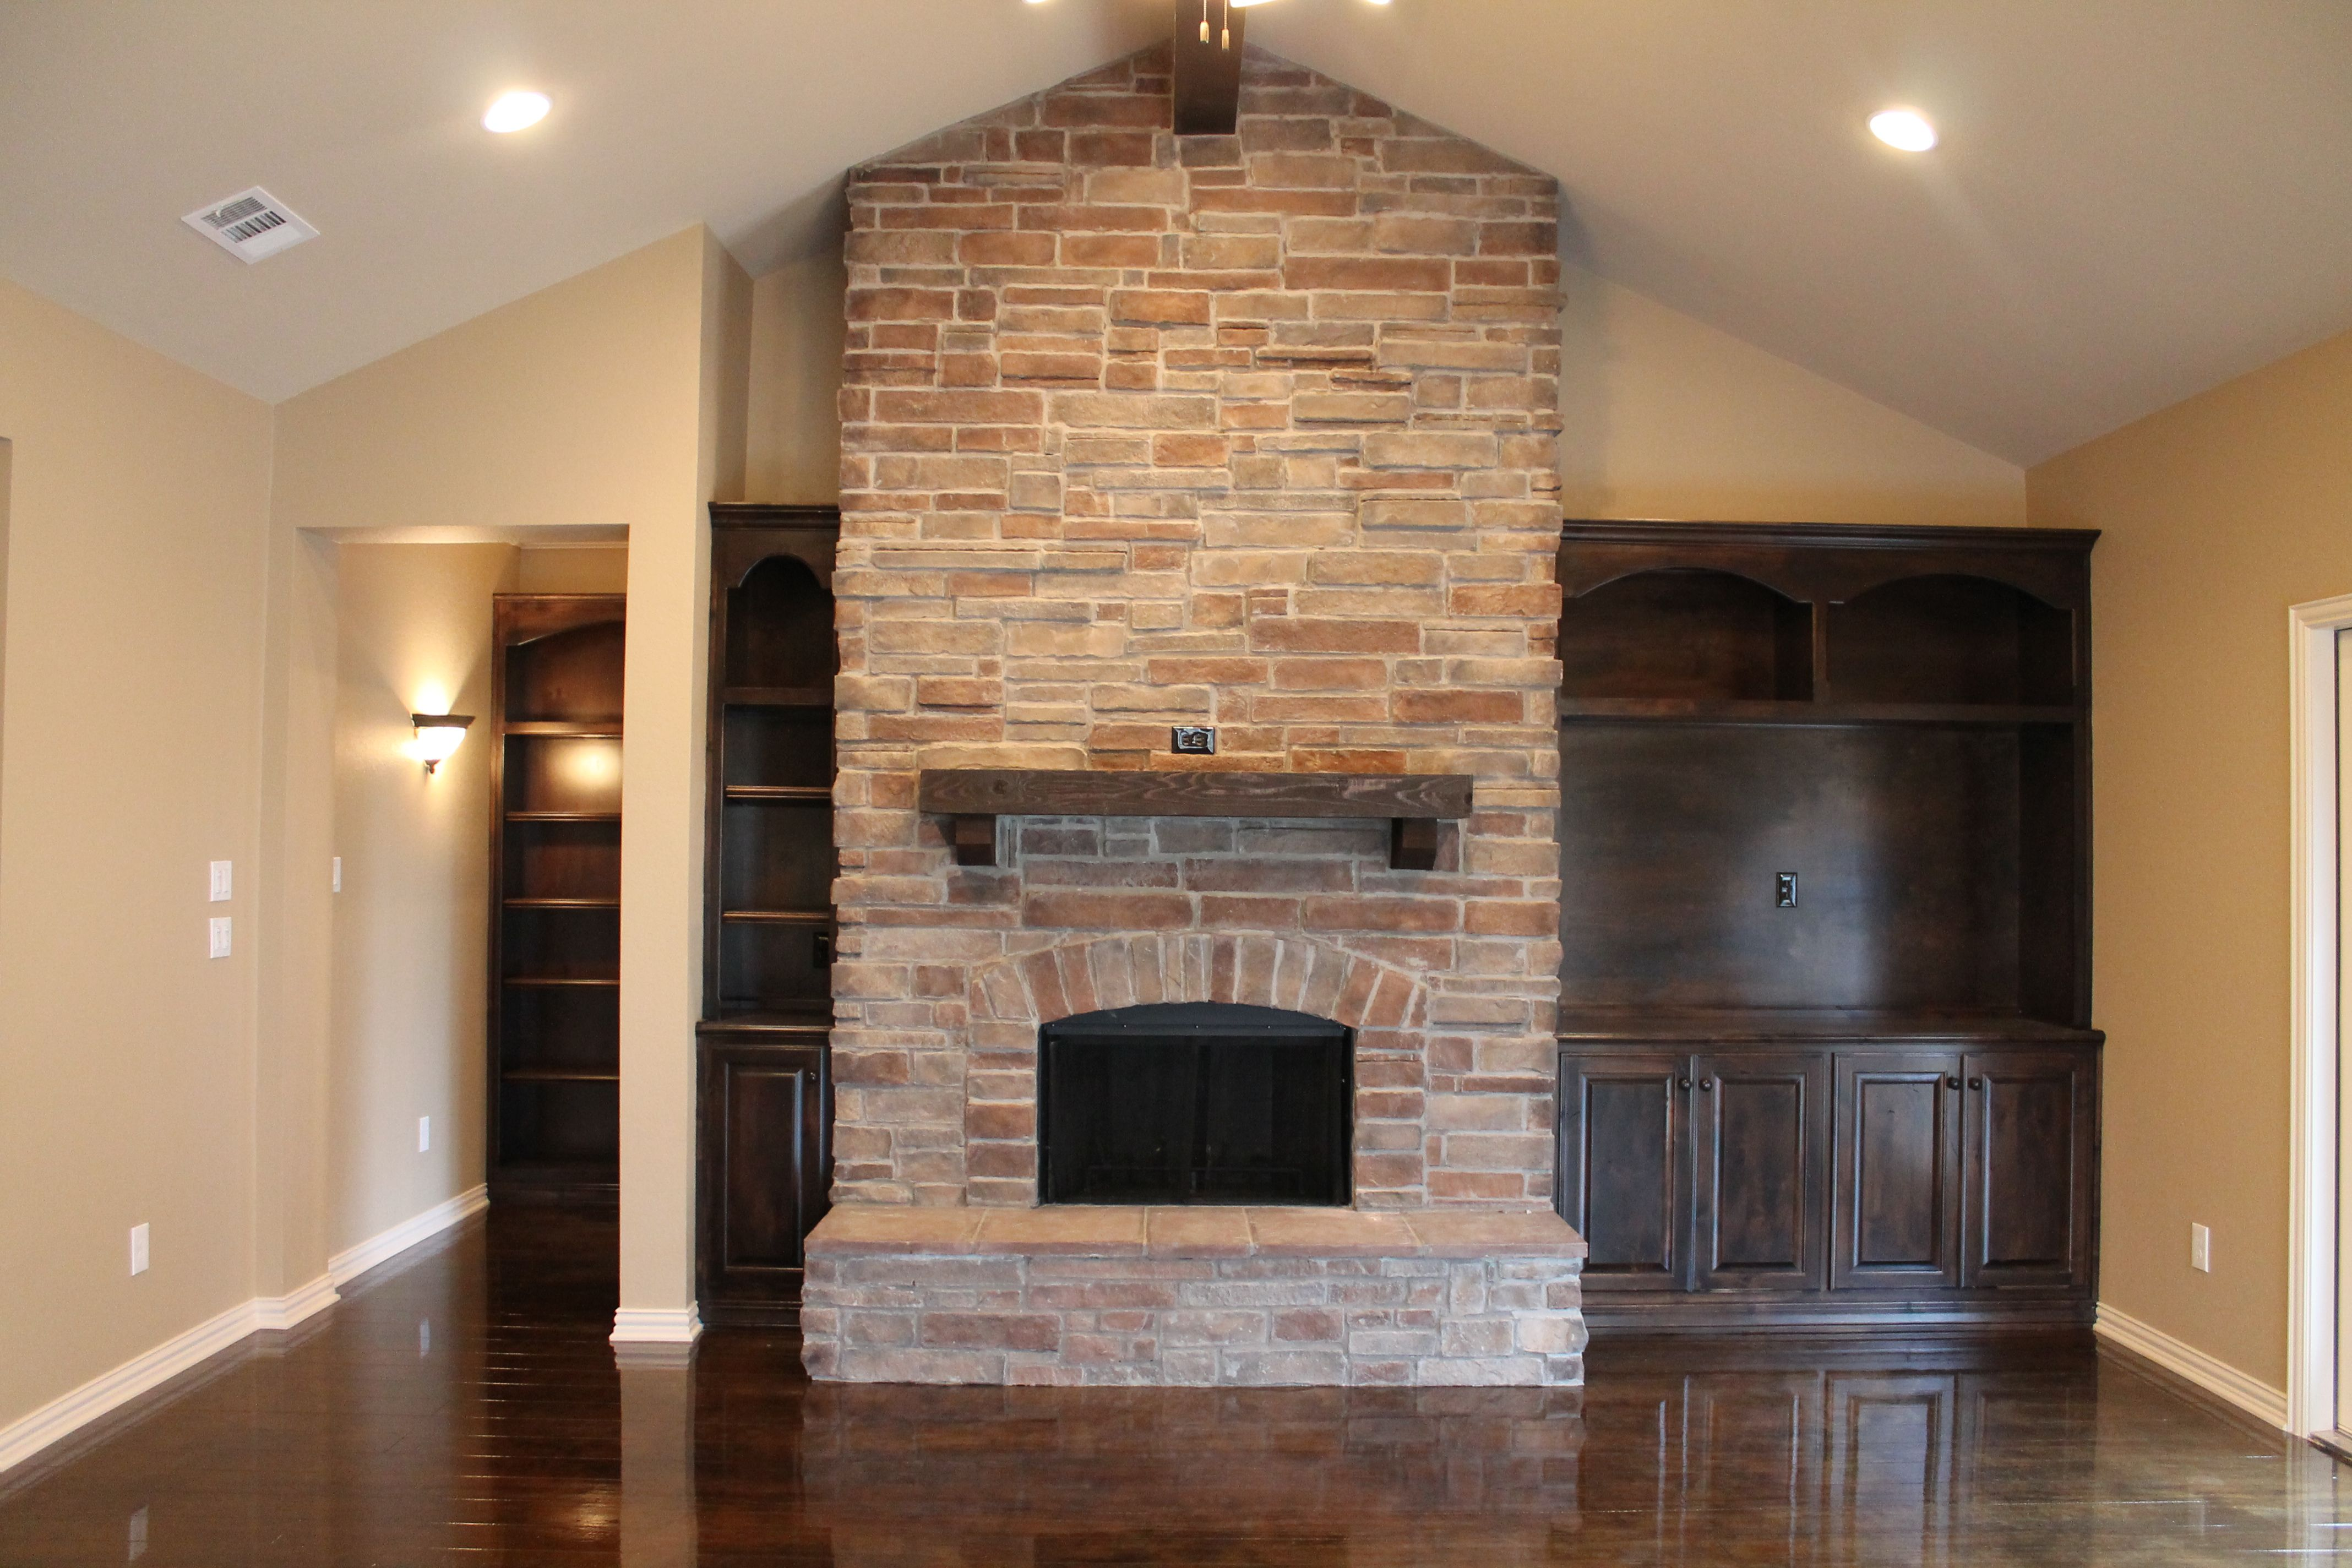 Stone Fireplace Custom Wood Stained Built Ins And Concrete Floors That Look Like Wood Make This